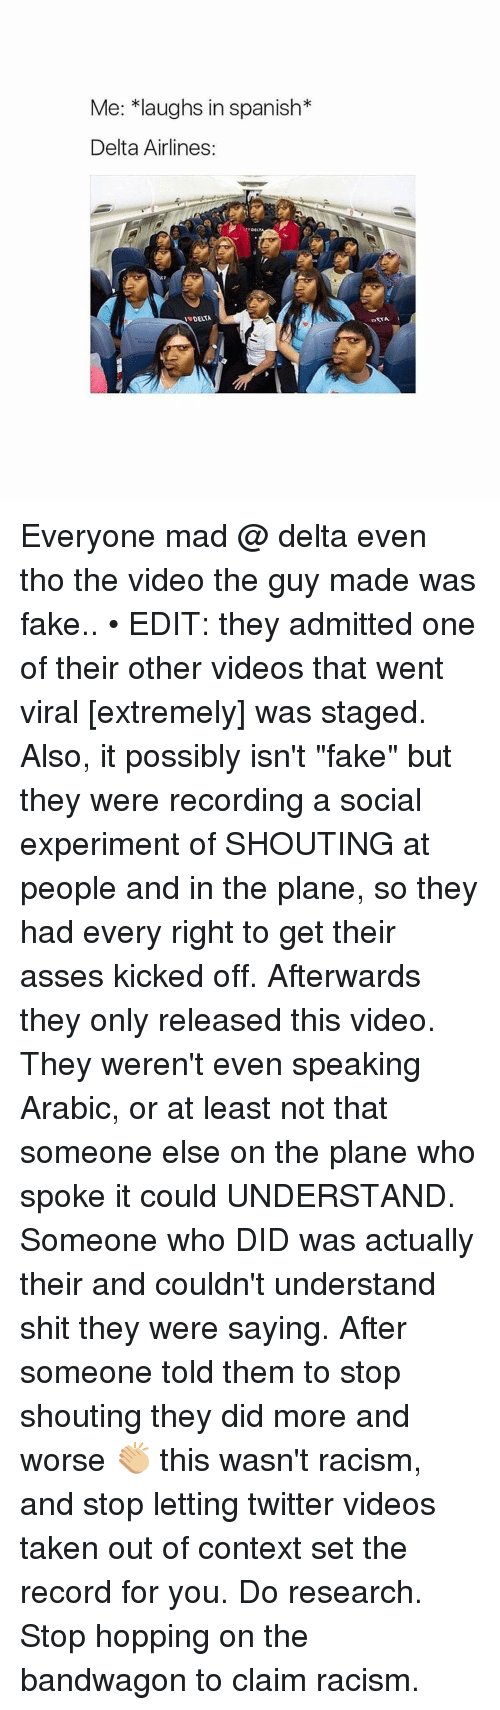 "delta airlines: Me: *laughs in spanish  Delta Airlines  DELT  INDELATA Everyone mad @ delta even tho the video the guy made was fake.. • EDIT: they admitted one of their other videos that went viral [extremely] was staged. Also, it possibly isn't ""fake"" but they were recording a social experiment of SHOUTING at people and in the plane, so they had every right to get their asses kicked off. Afterwards they only released this video. They weren't even speaking Arabic, or at least not that someone else on the plane who spoke it could UNDERSTAND. Someone who DID was actually their and couldn't understand shit they were saying. After someone told them to stop shouting they did more and worse 👏🏼 this wasn't racism, and stop letting twitter videos taken out of context set the record for you. Do research. Stop hopping on the bandwagon to claim racism."